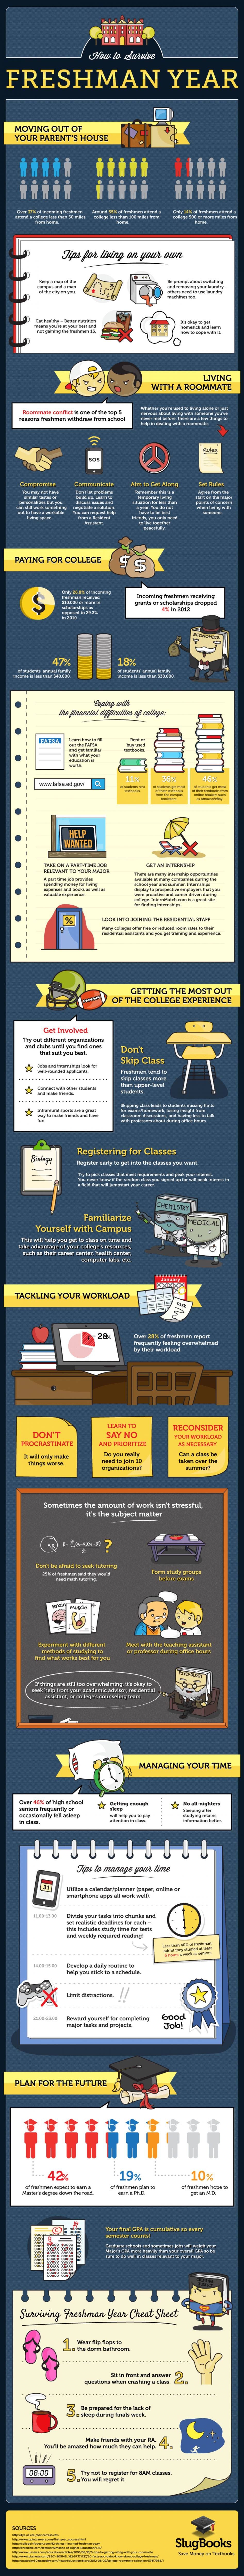 How To Survive Freshman Year Infographic